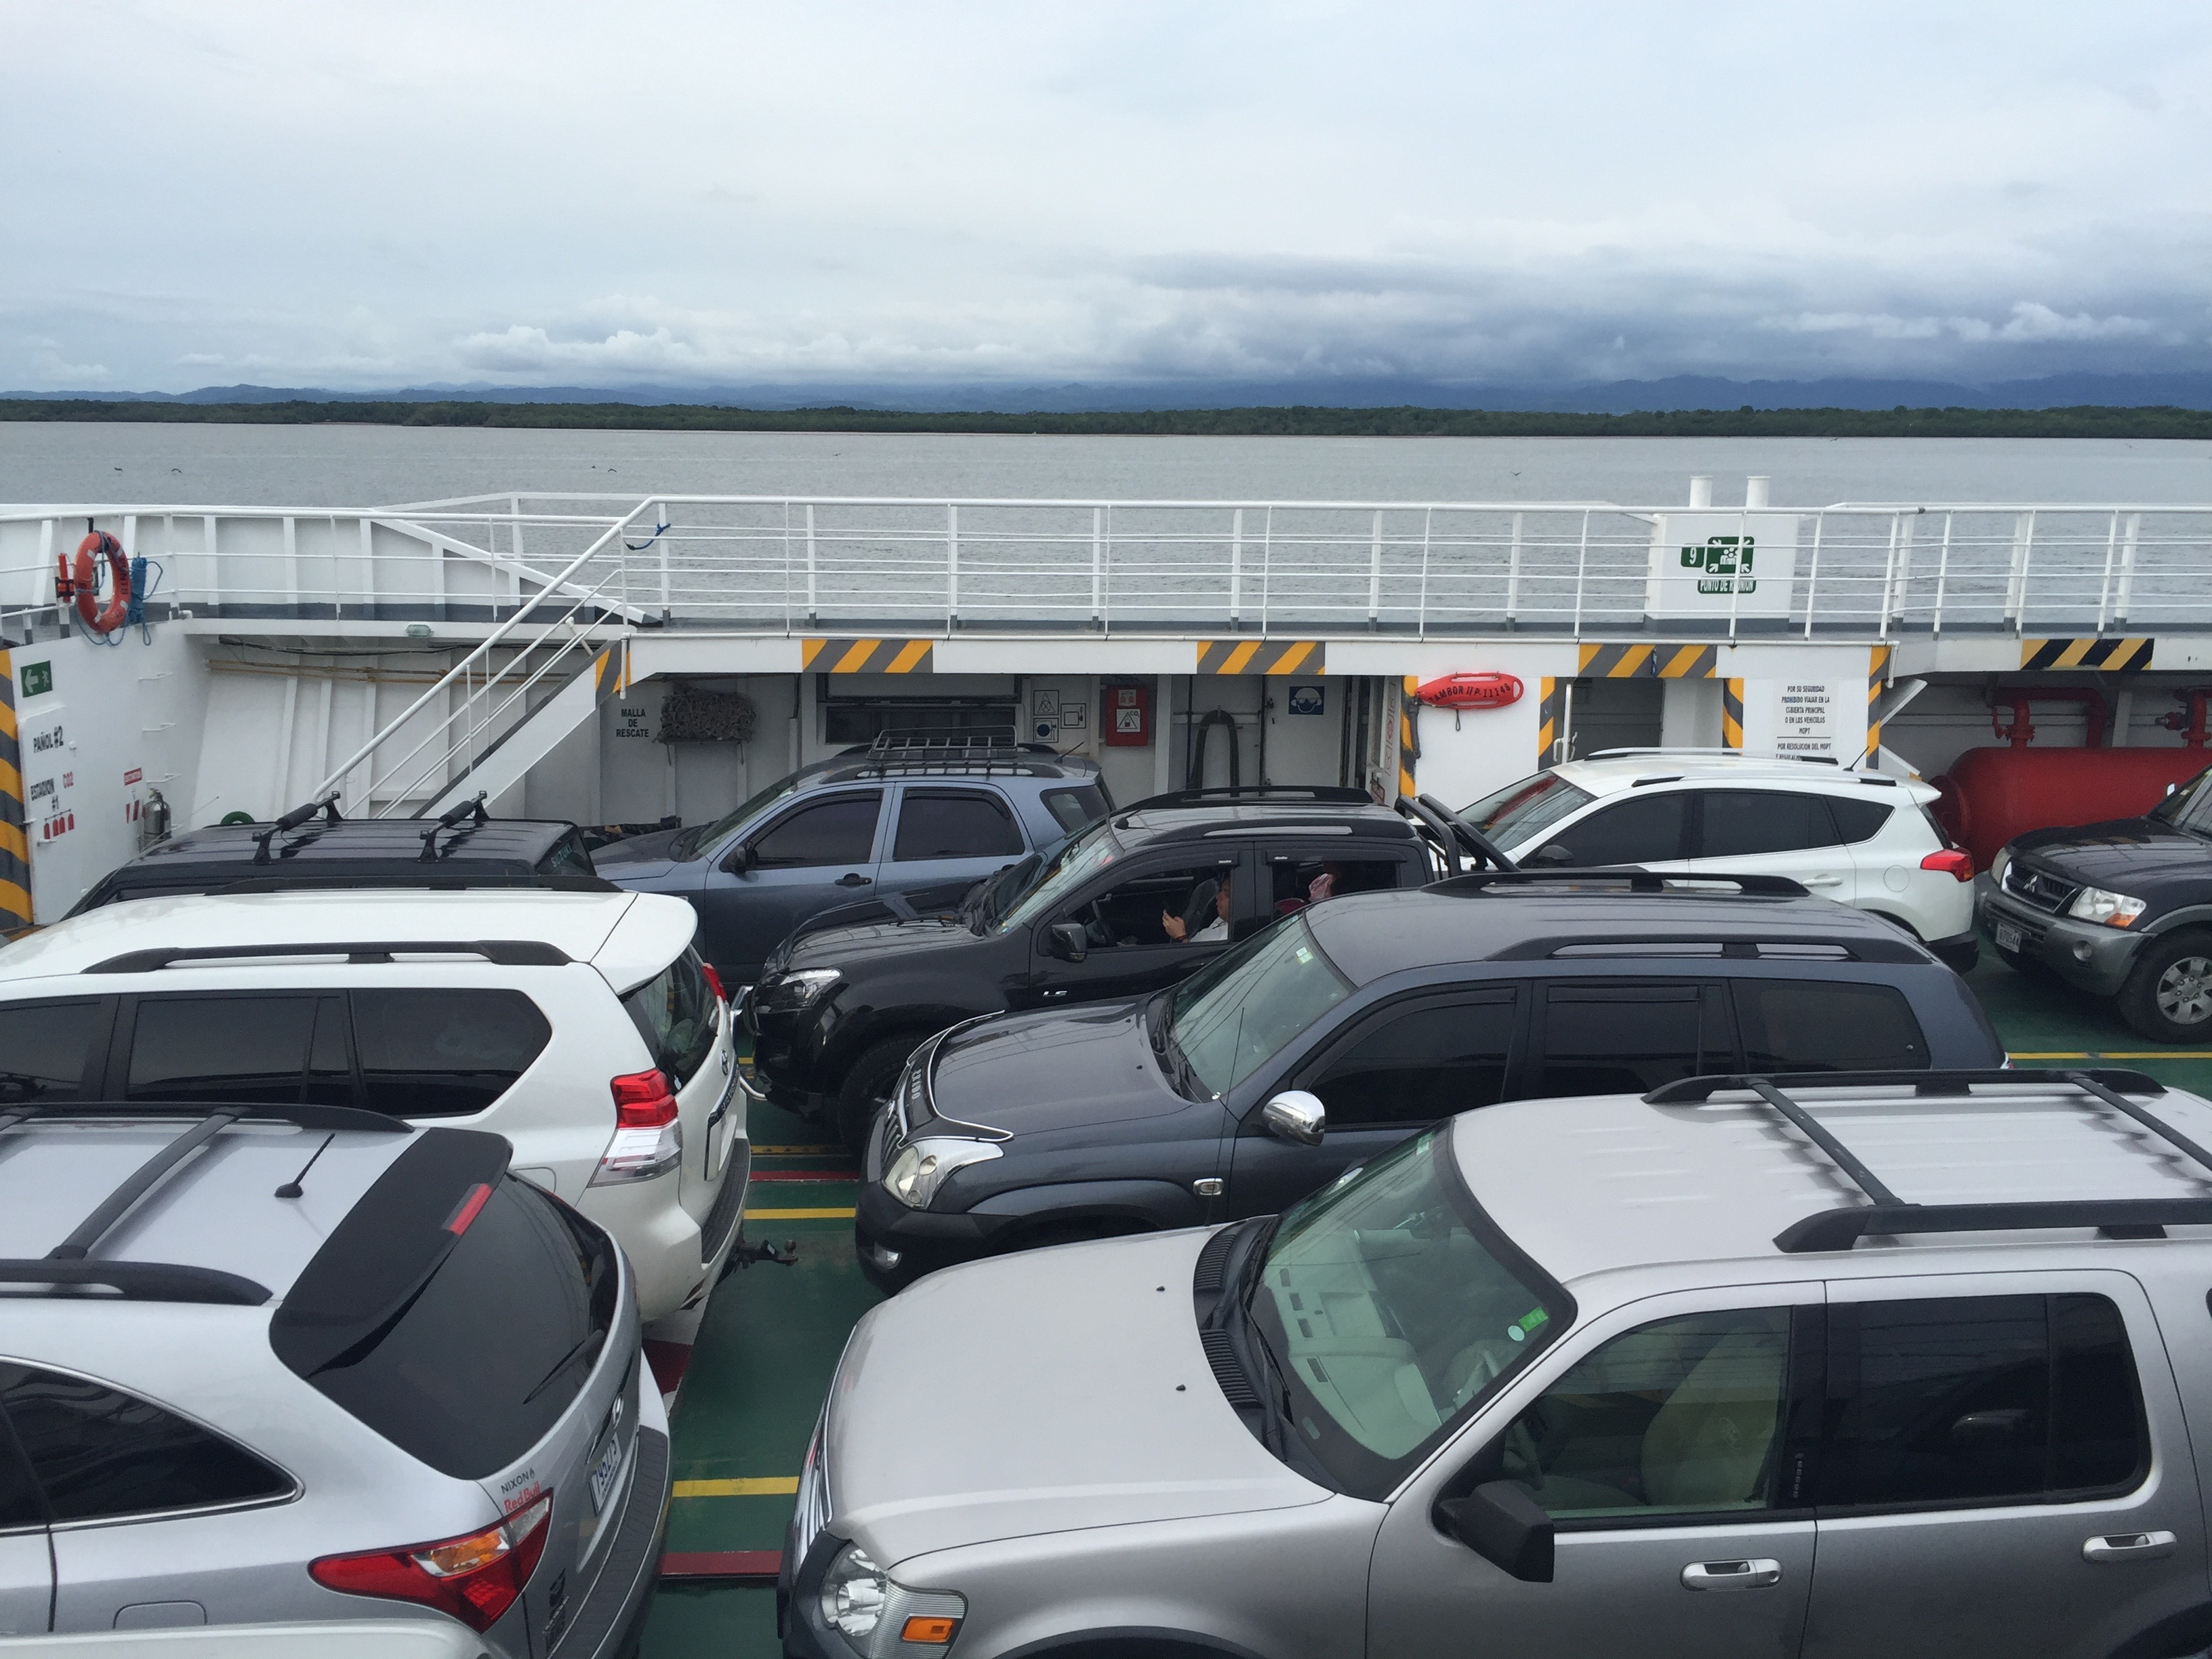 Cars wait on a ferry sailing across a waterway in Costa Rica.